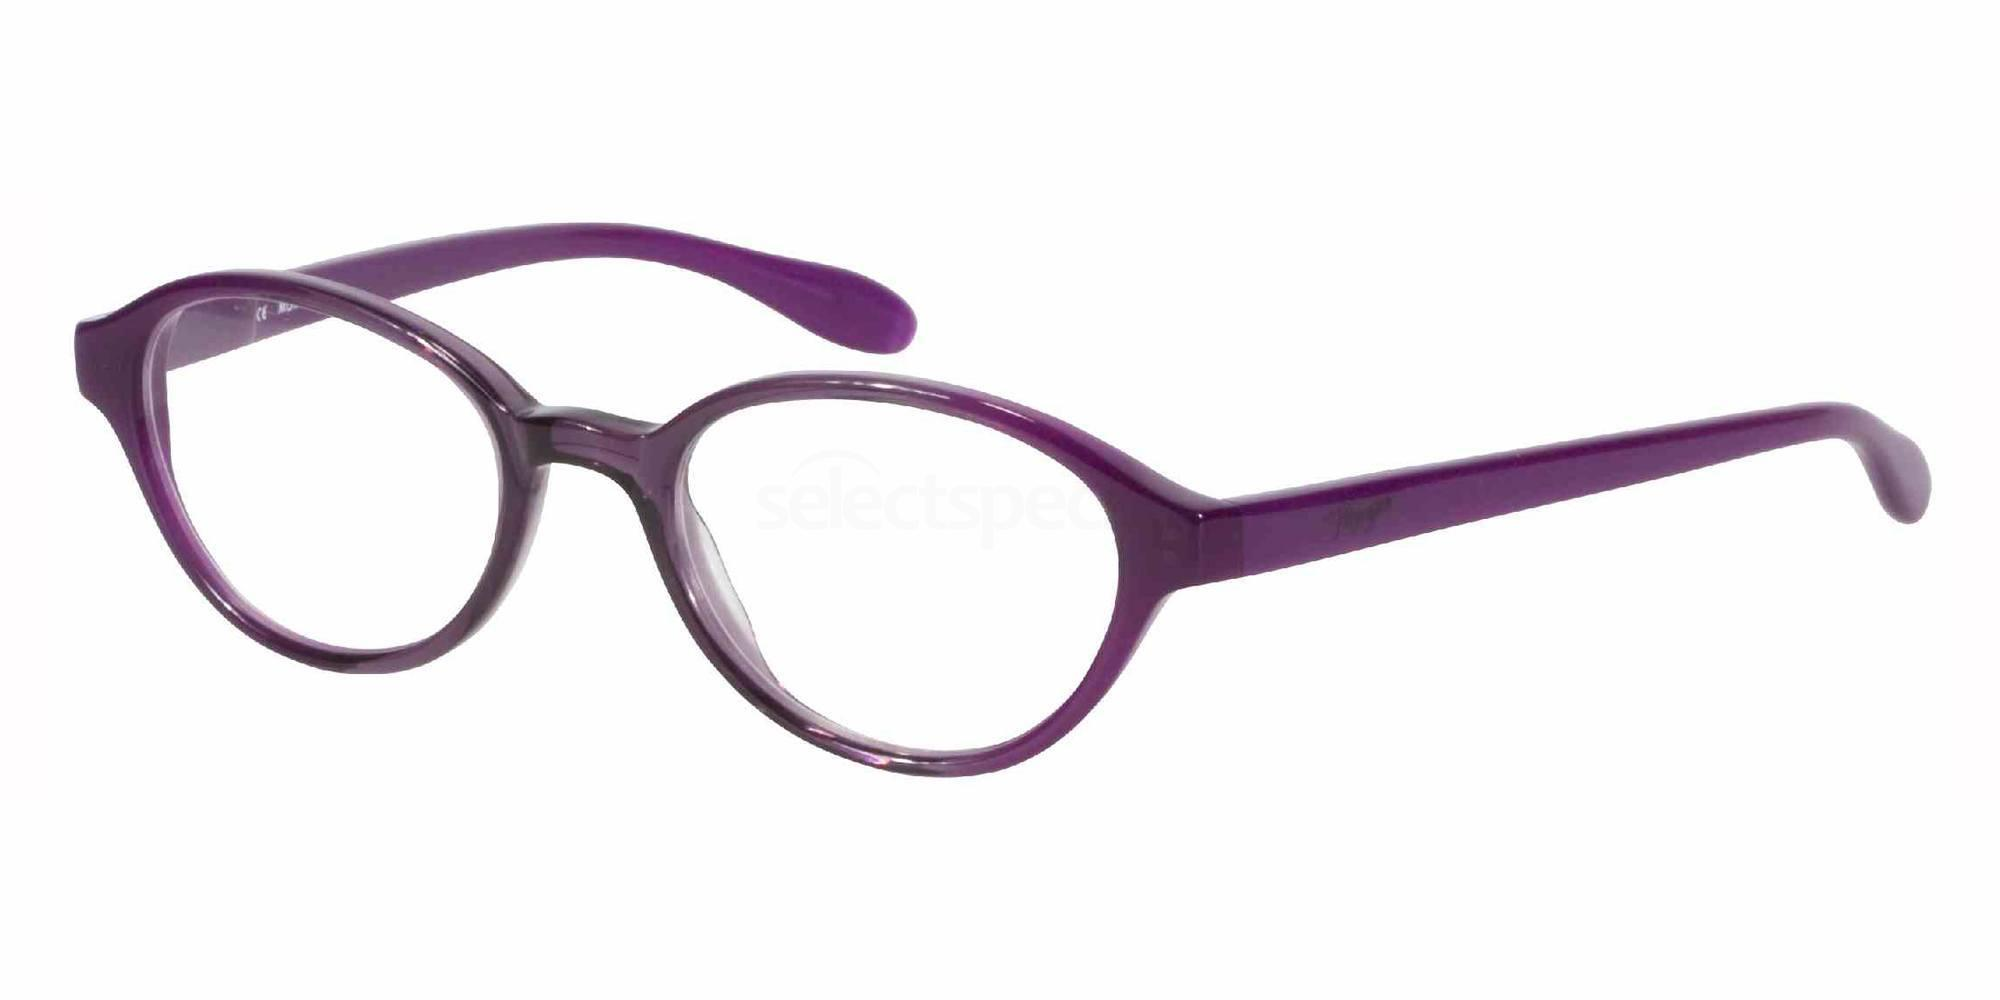 6323 201040 Glasses, MORGAN Eyewear